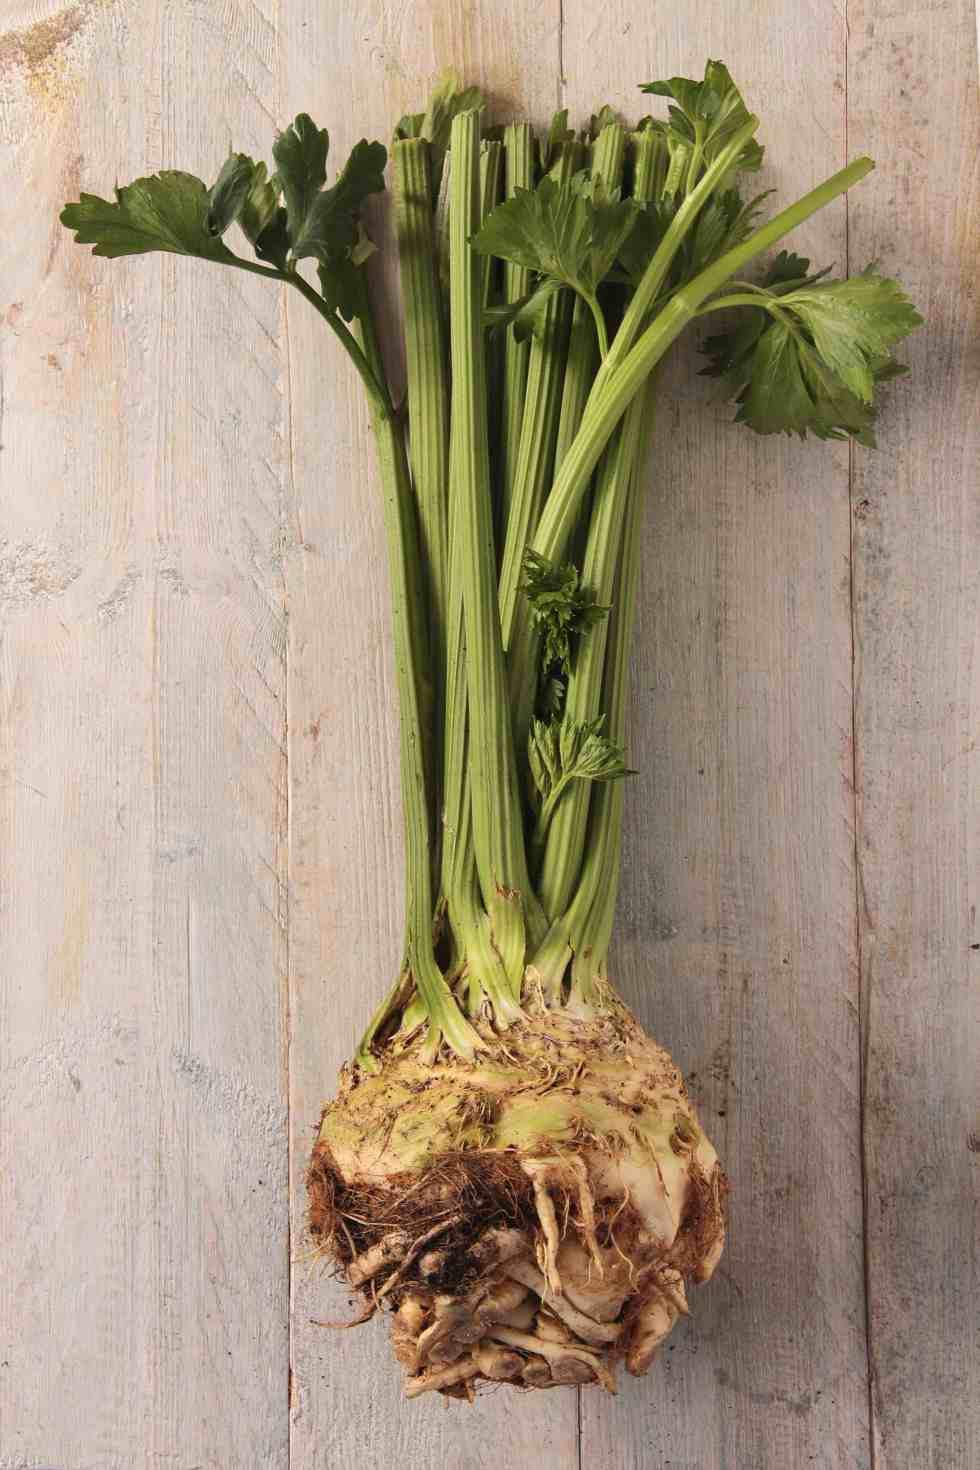 whole celery with root on a wooden table